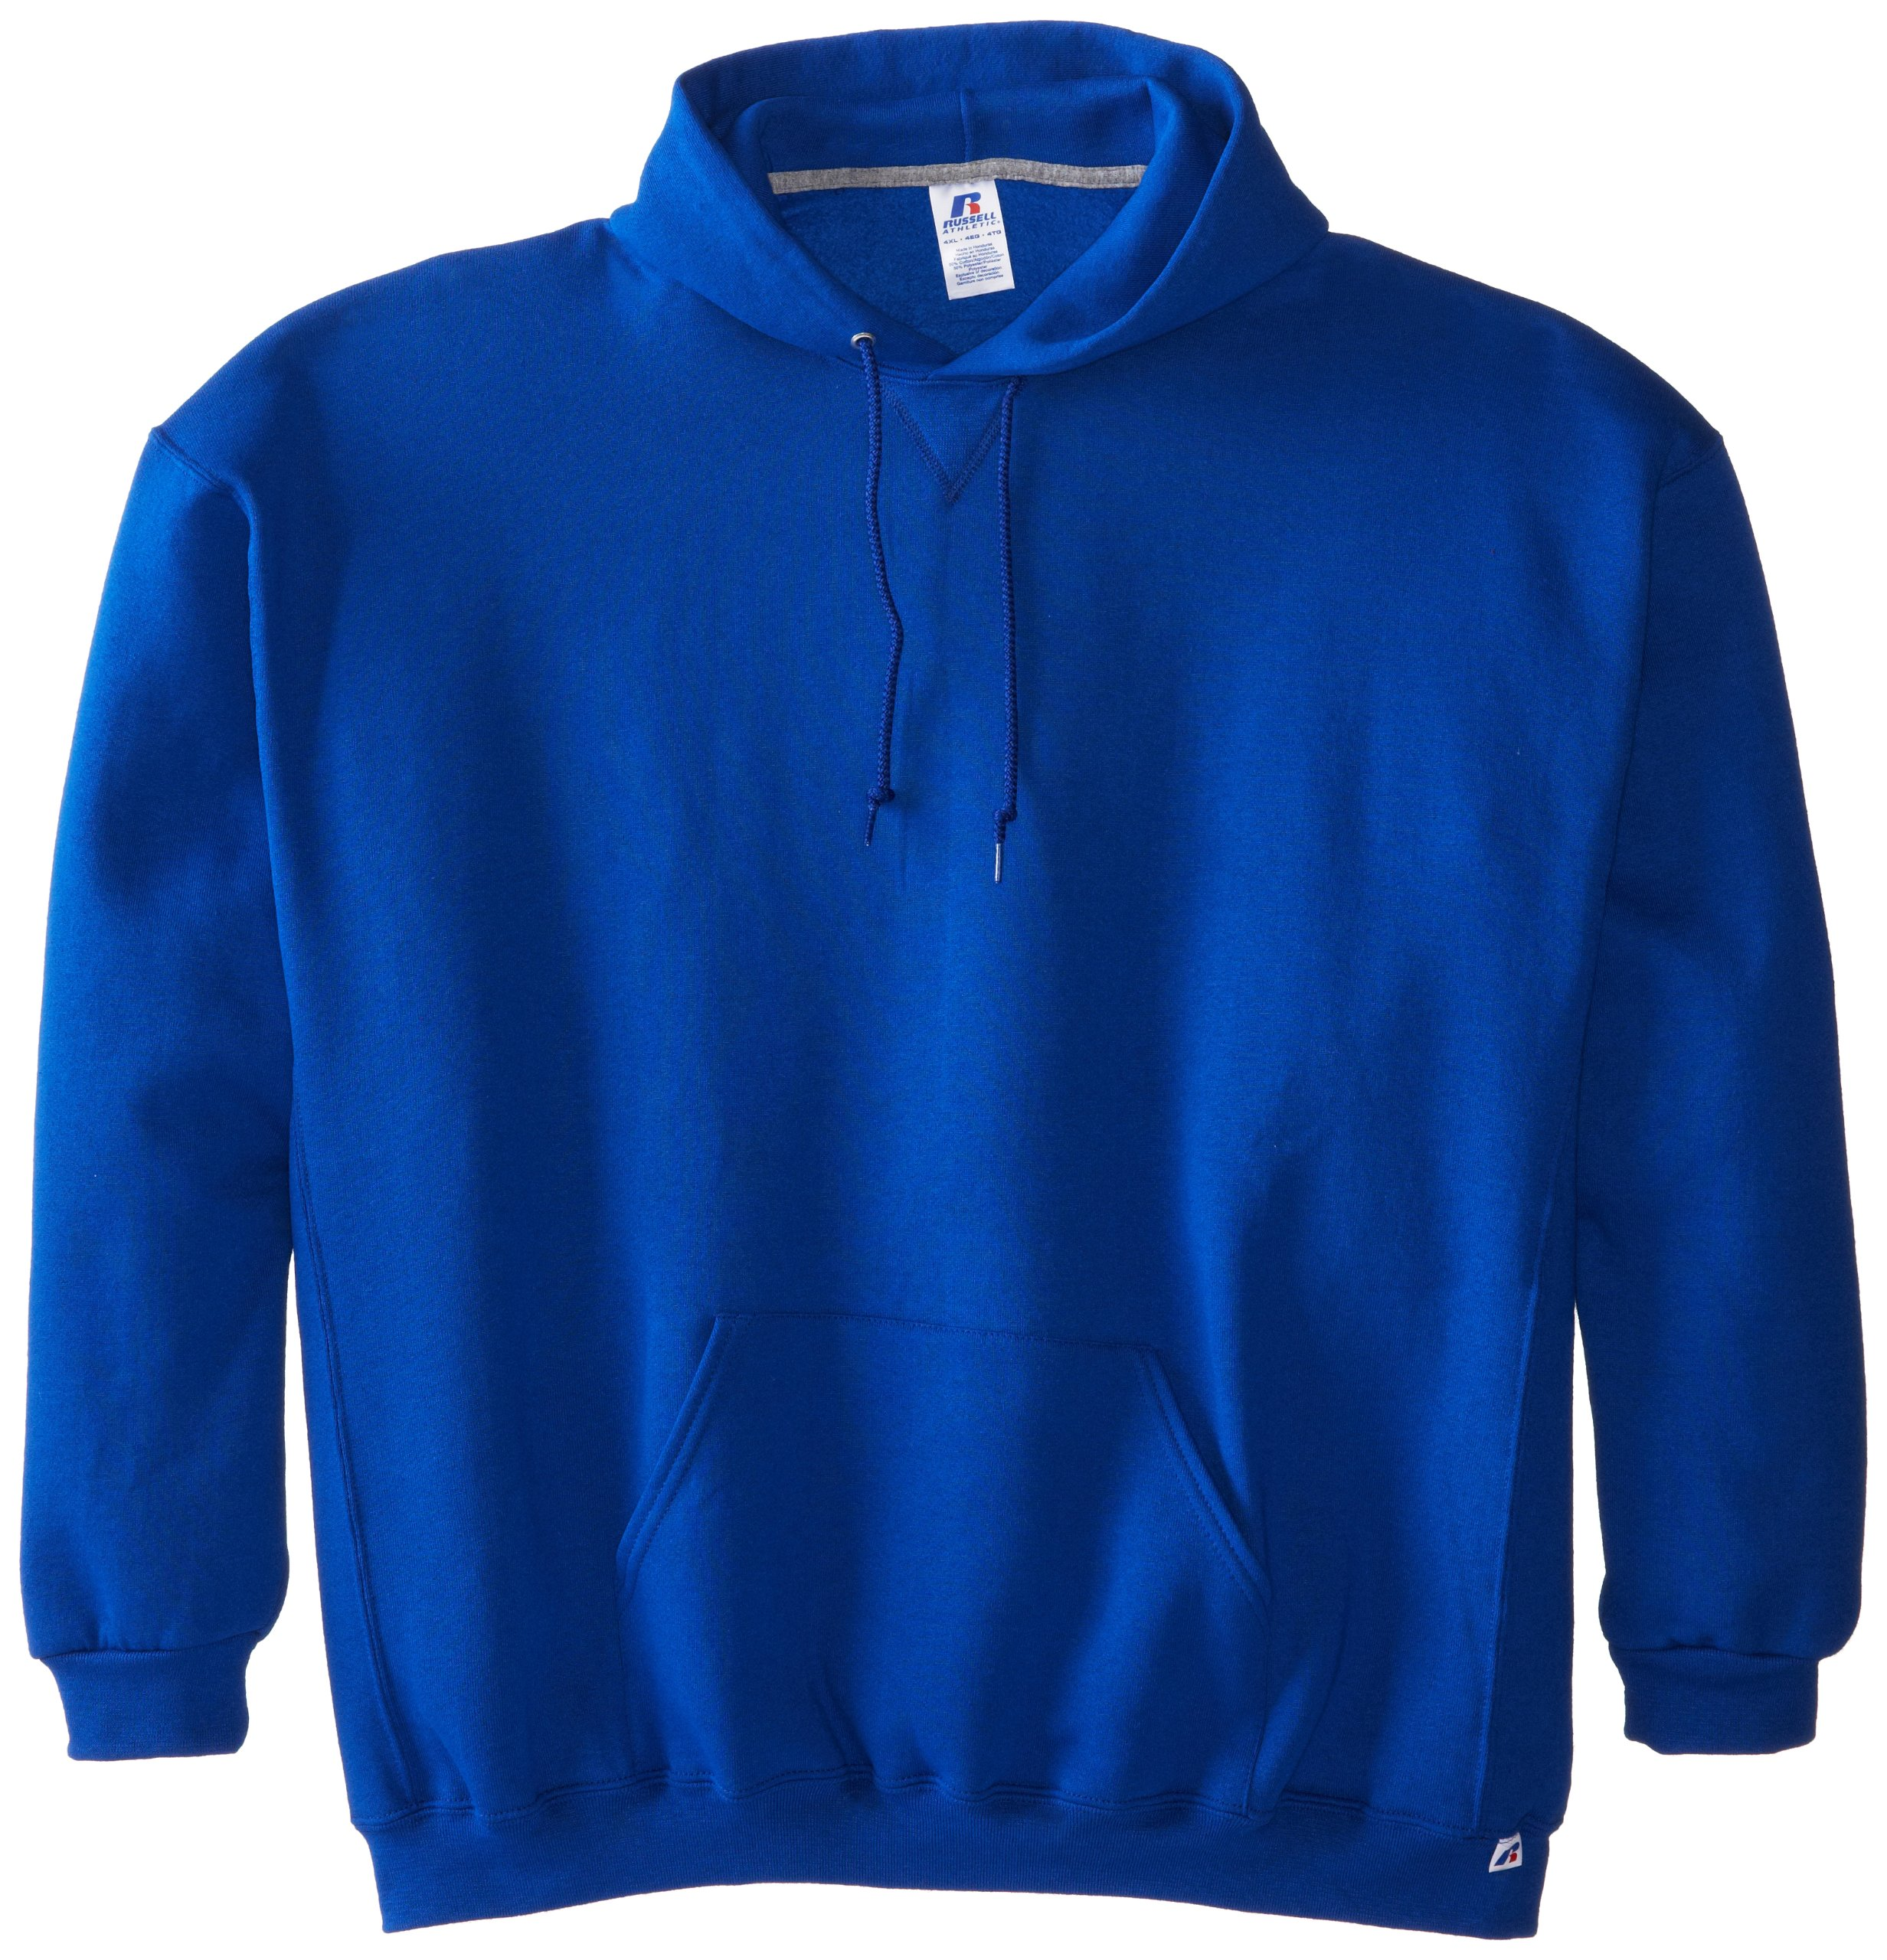 Russell Athletic Men's Dri-Power Pullover Fleece Hoodie, Royal, 4X-Large